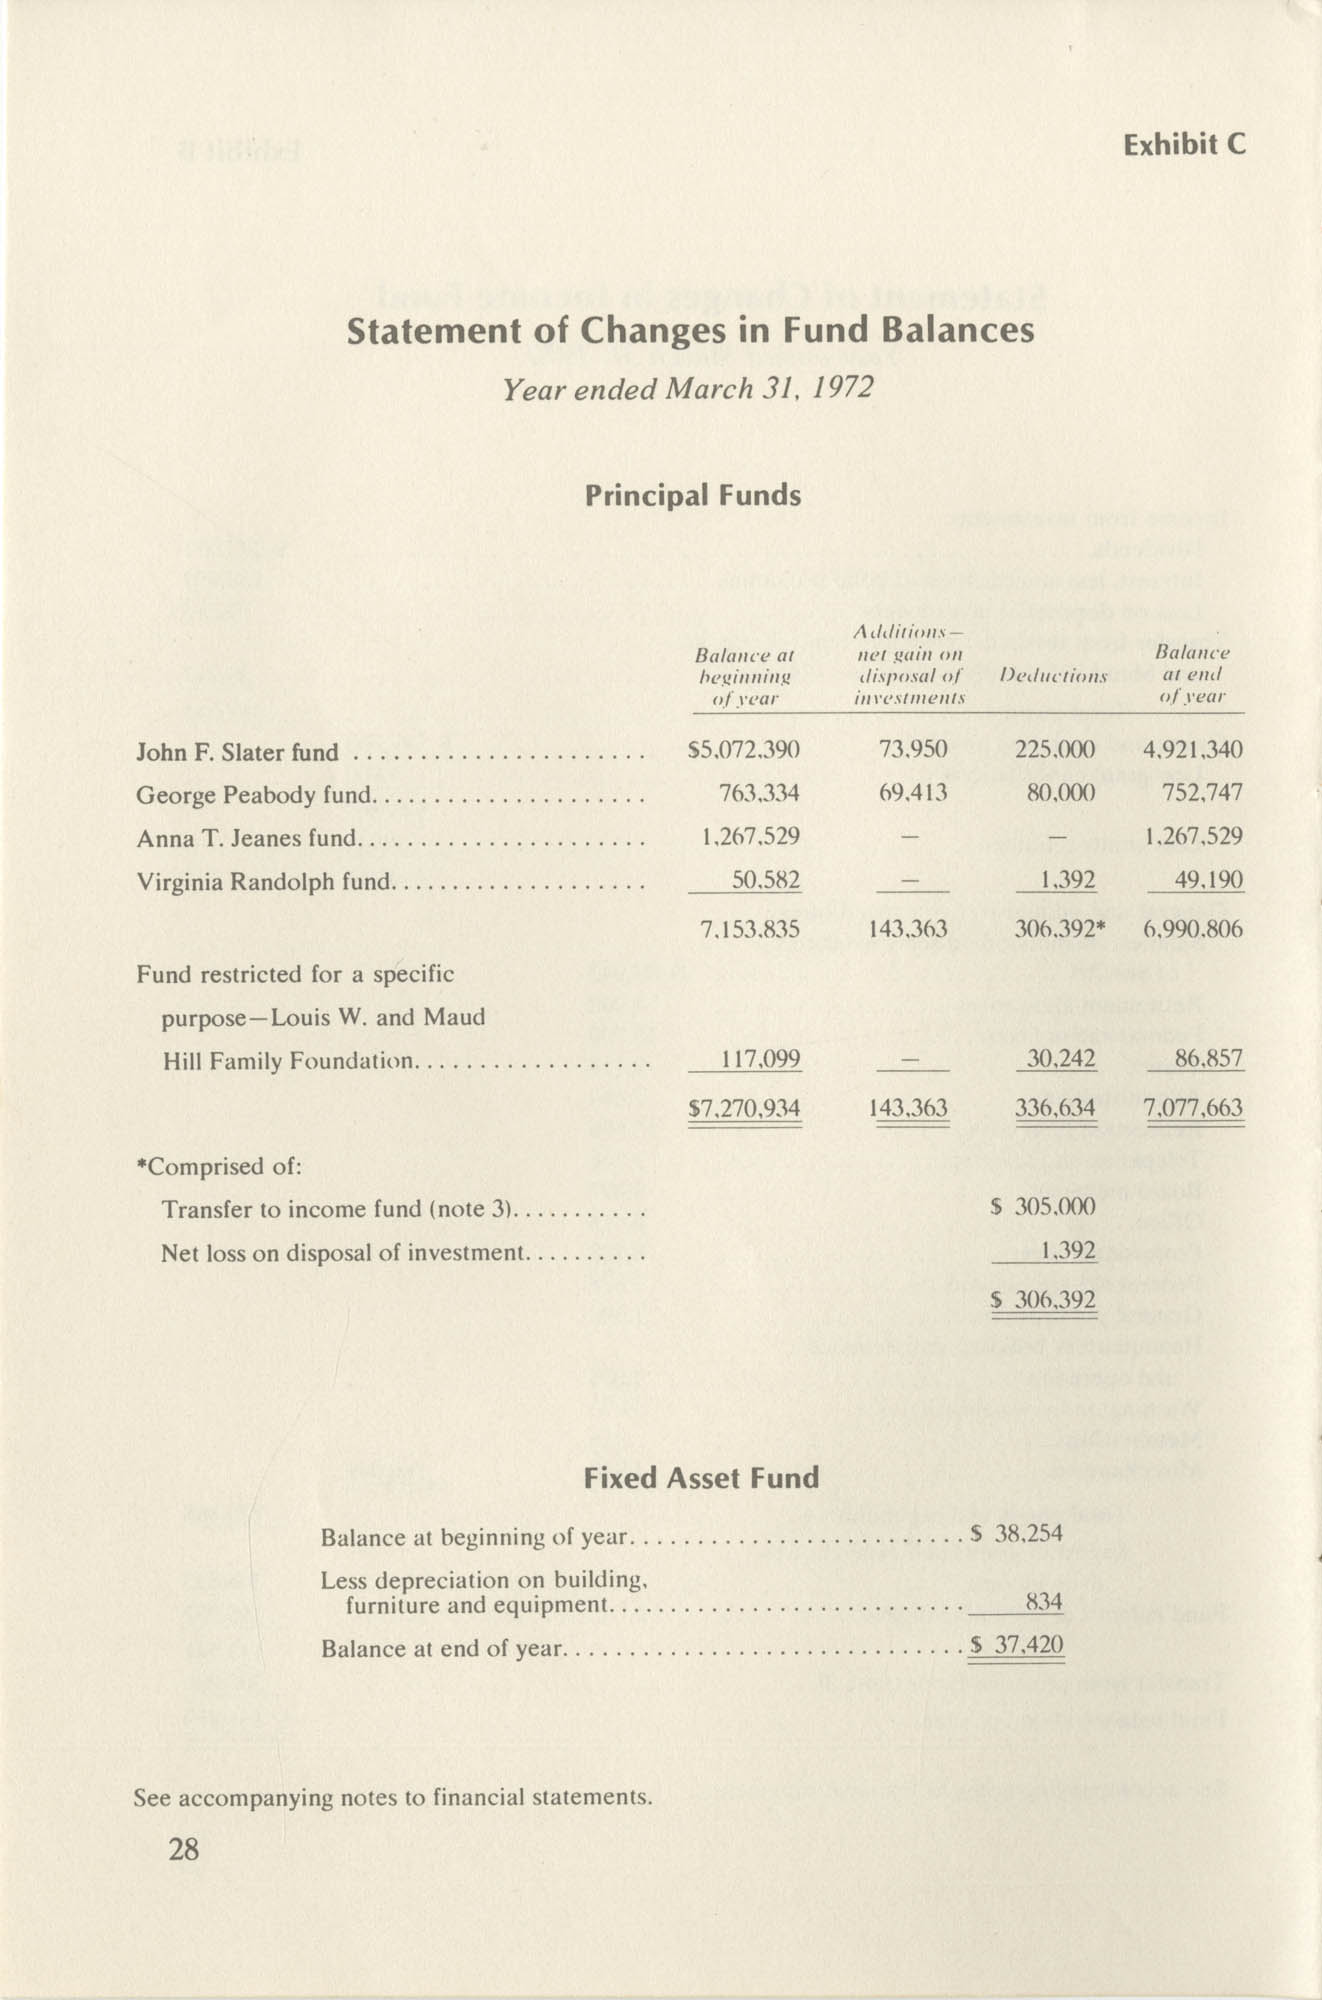 Southern Education Foundation, Annual Report 1971-1972, Page 28